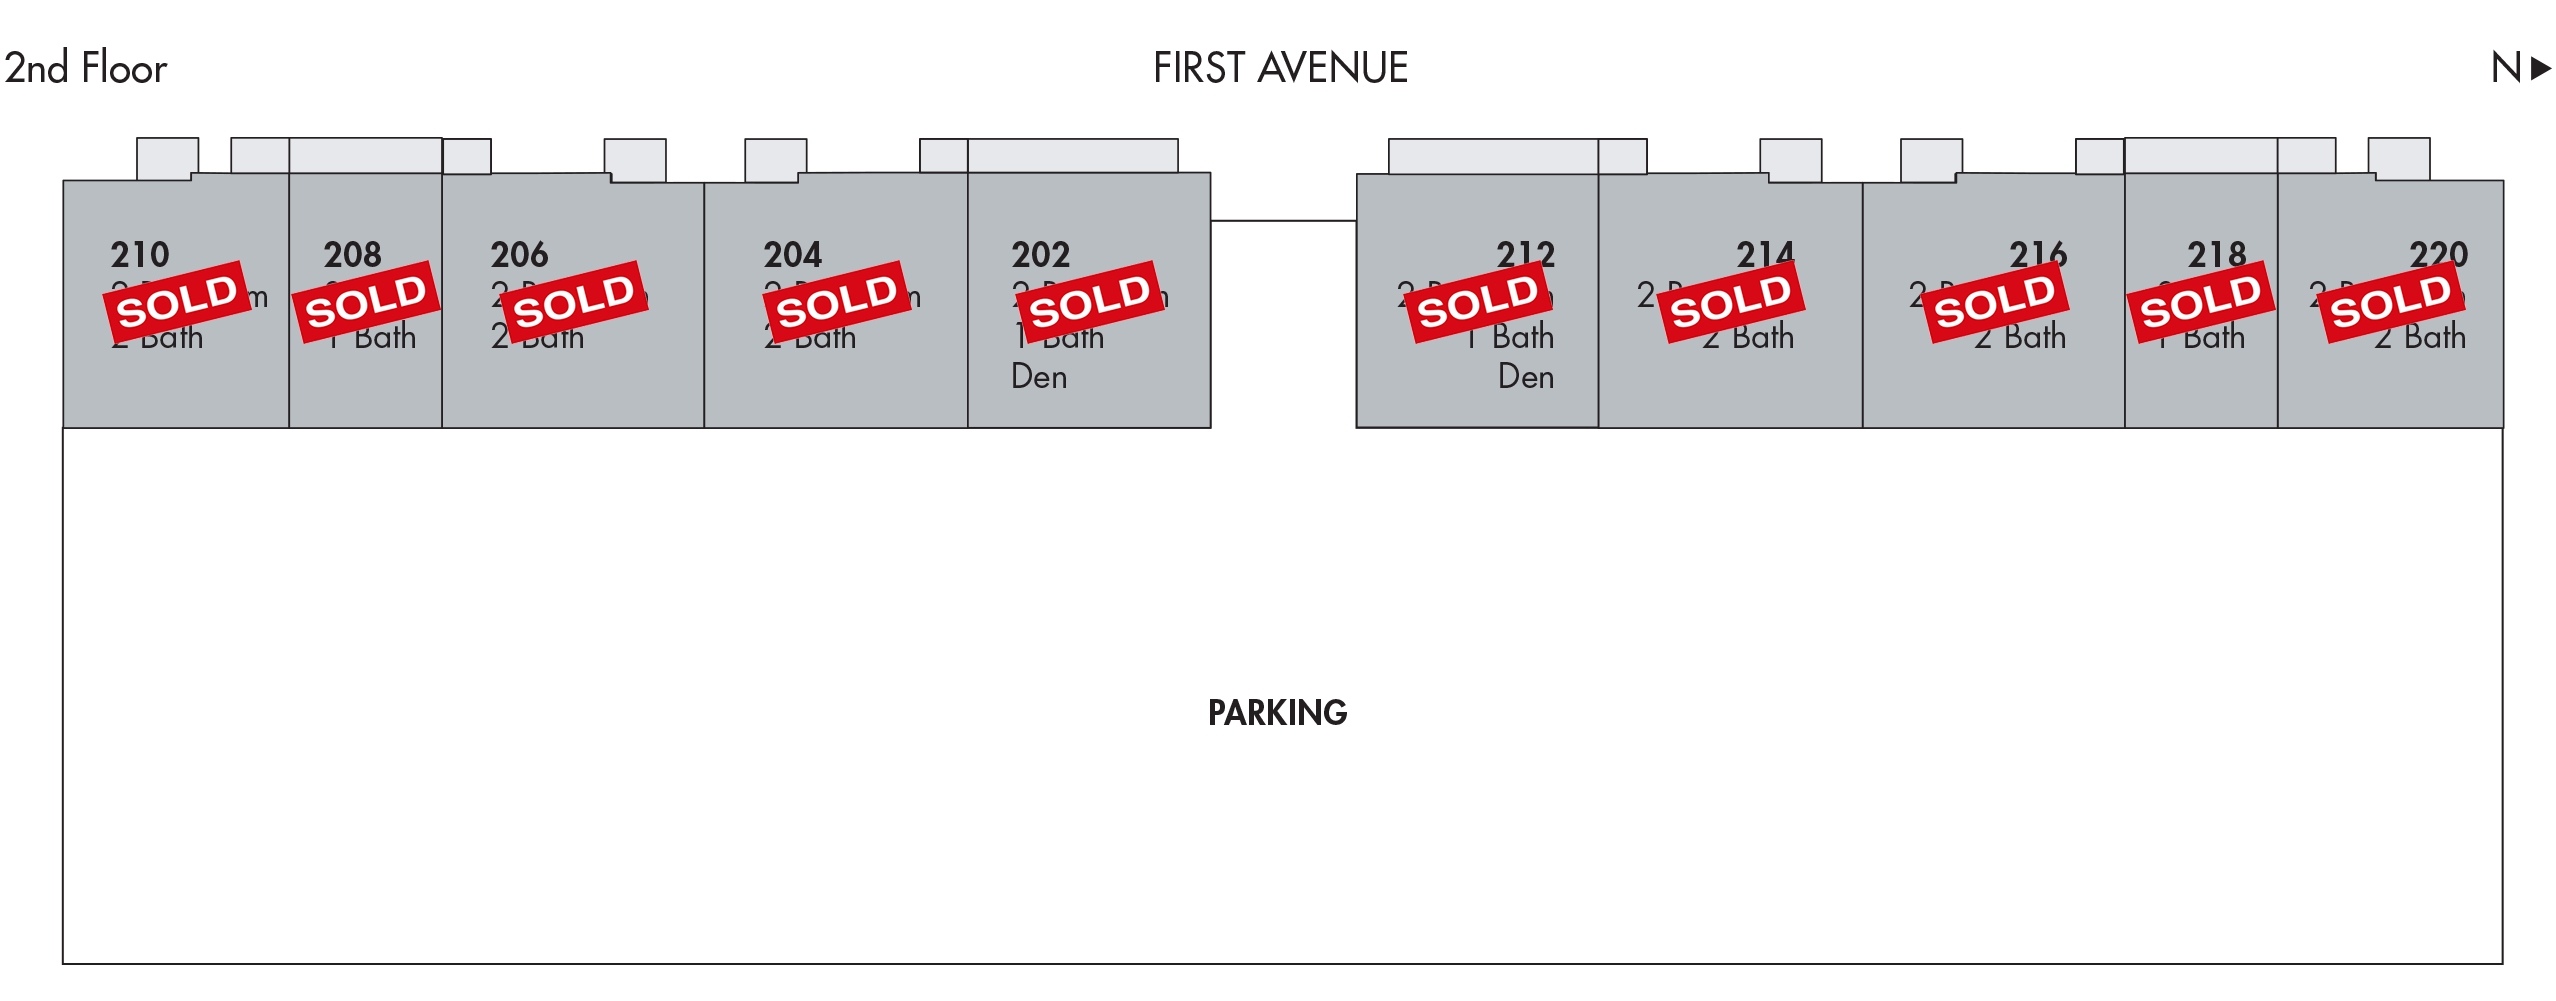 hottest new condo in Delray - 111 First Delray 2nd floor sold out